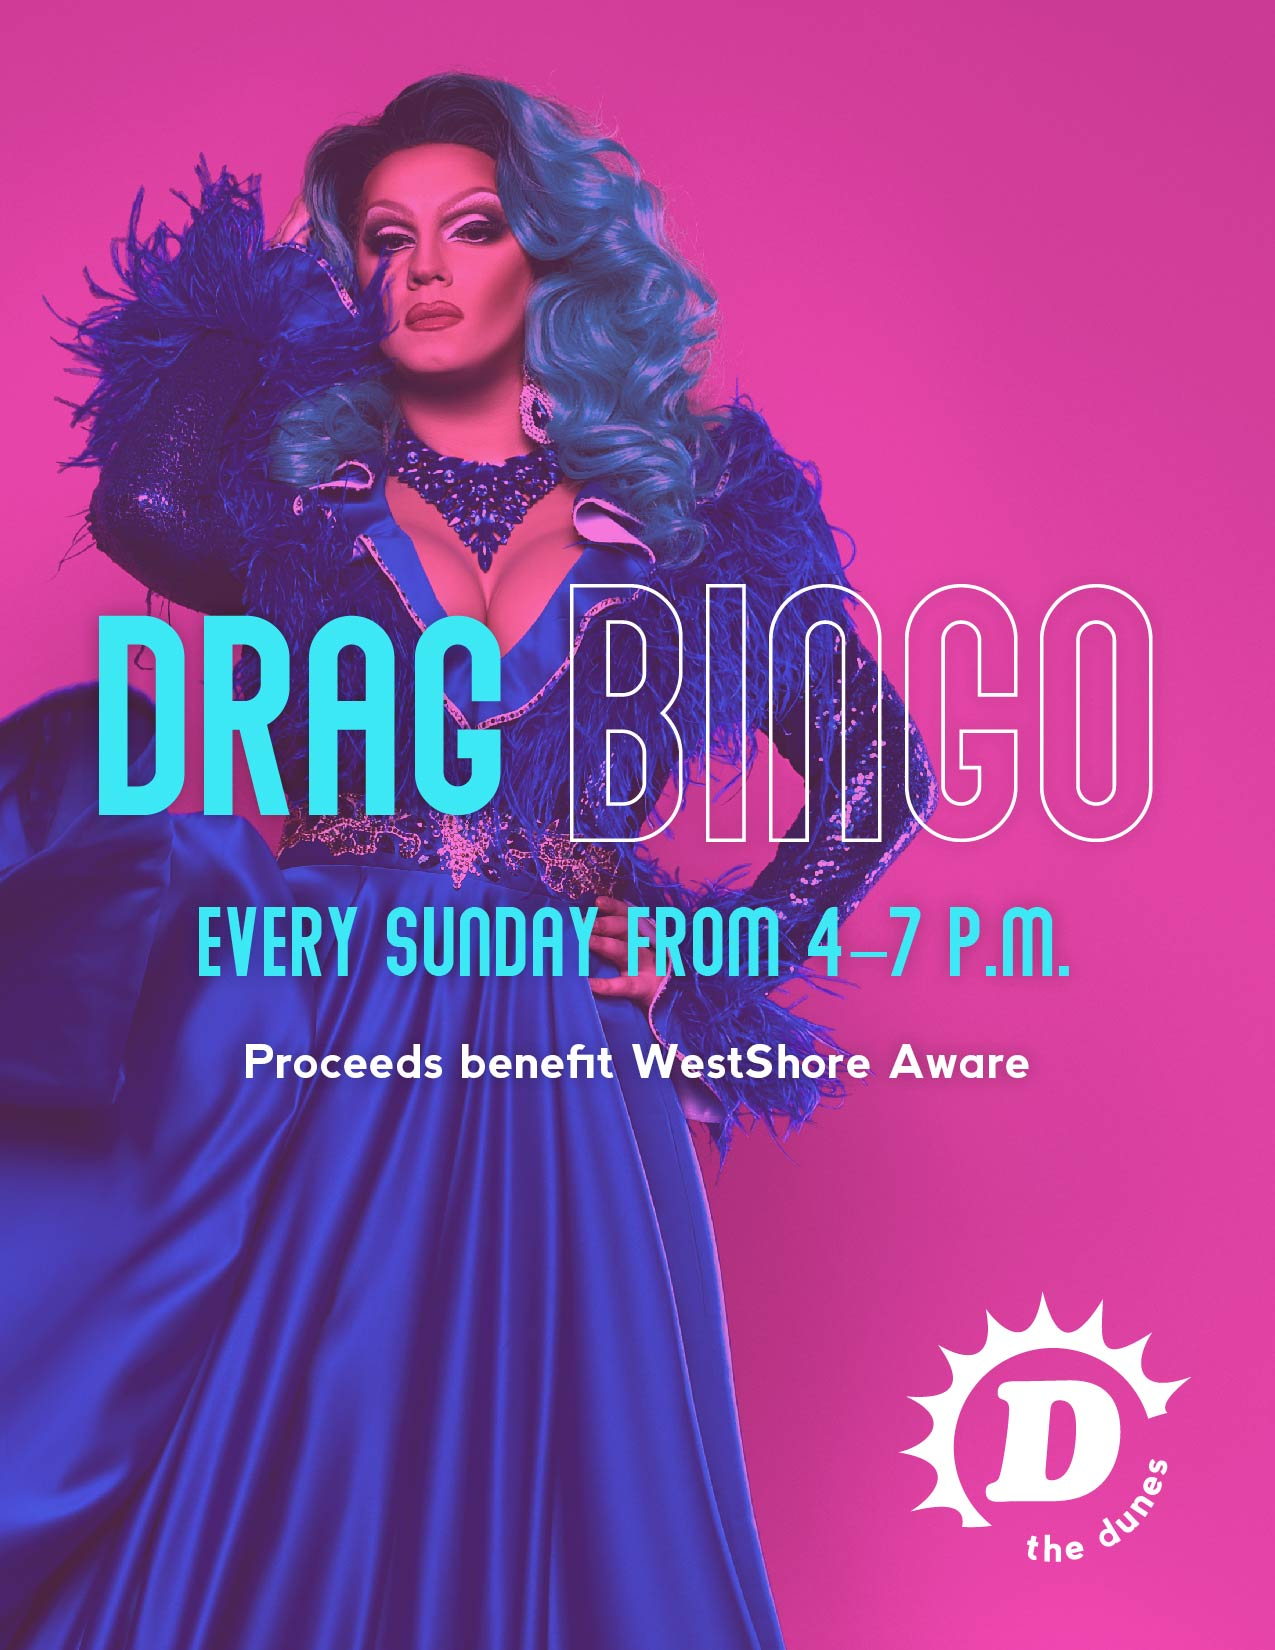 Drag Bingo promo poster for September 2020.